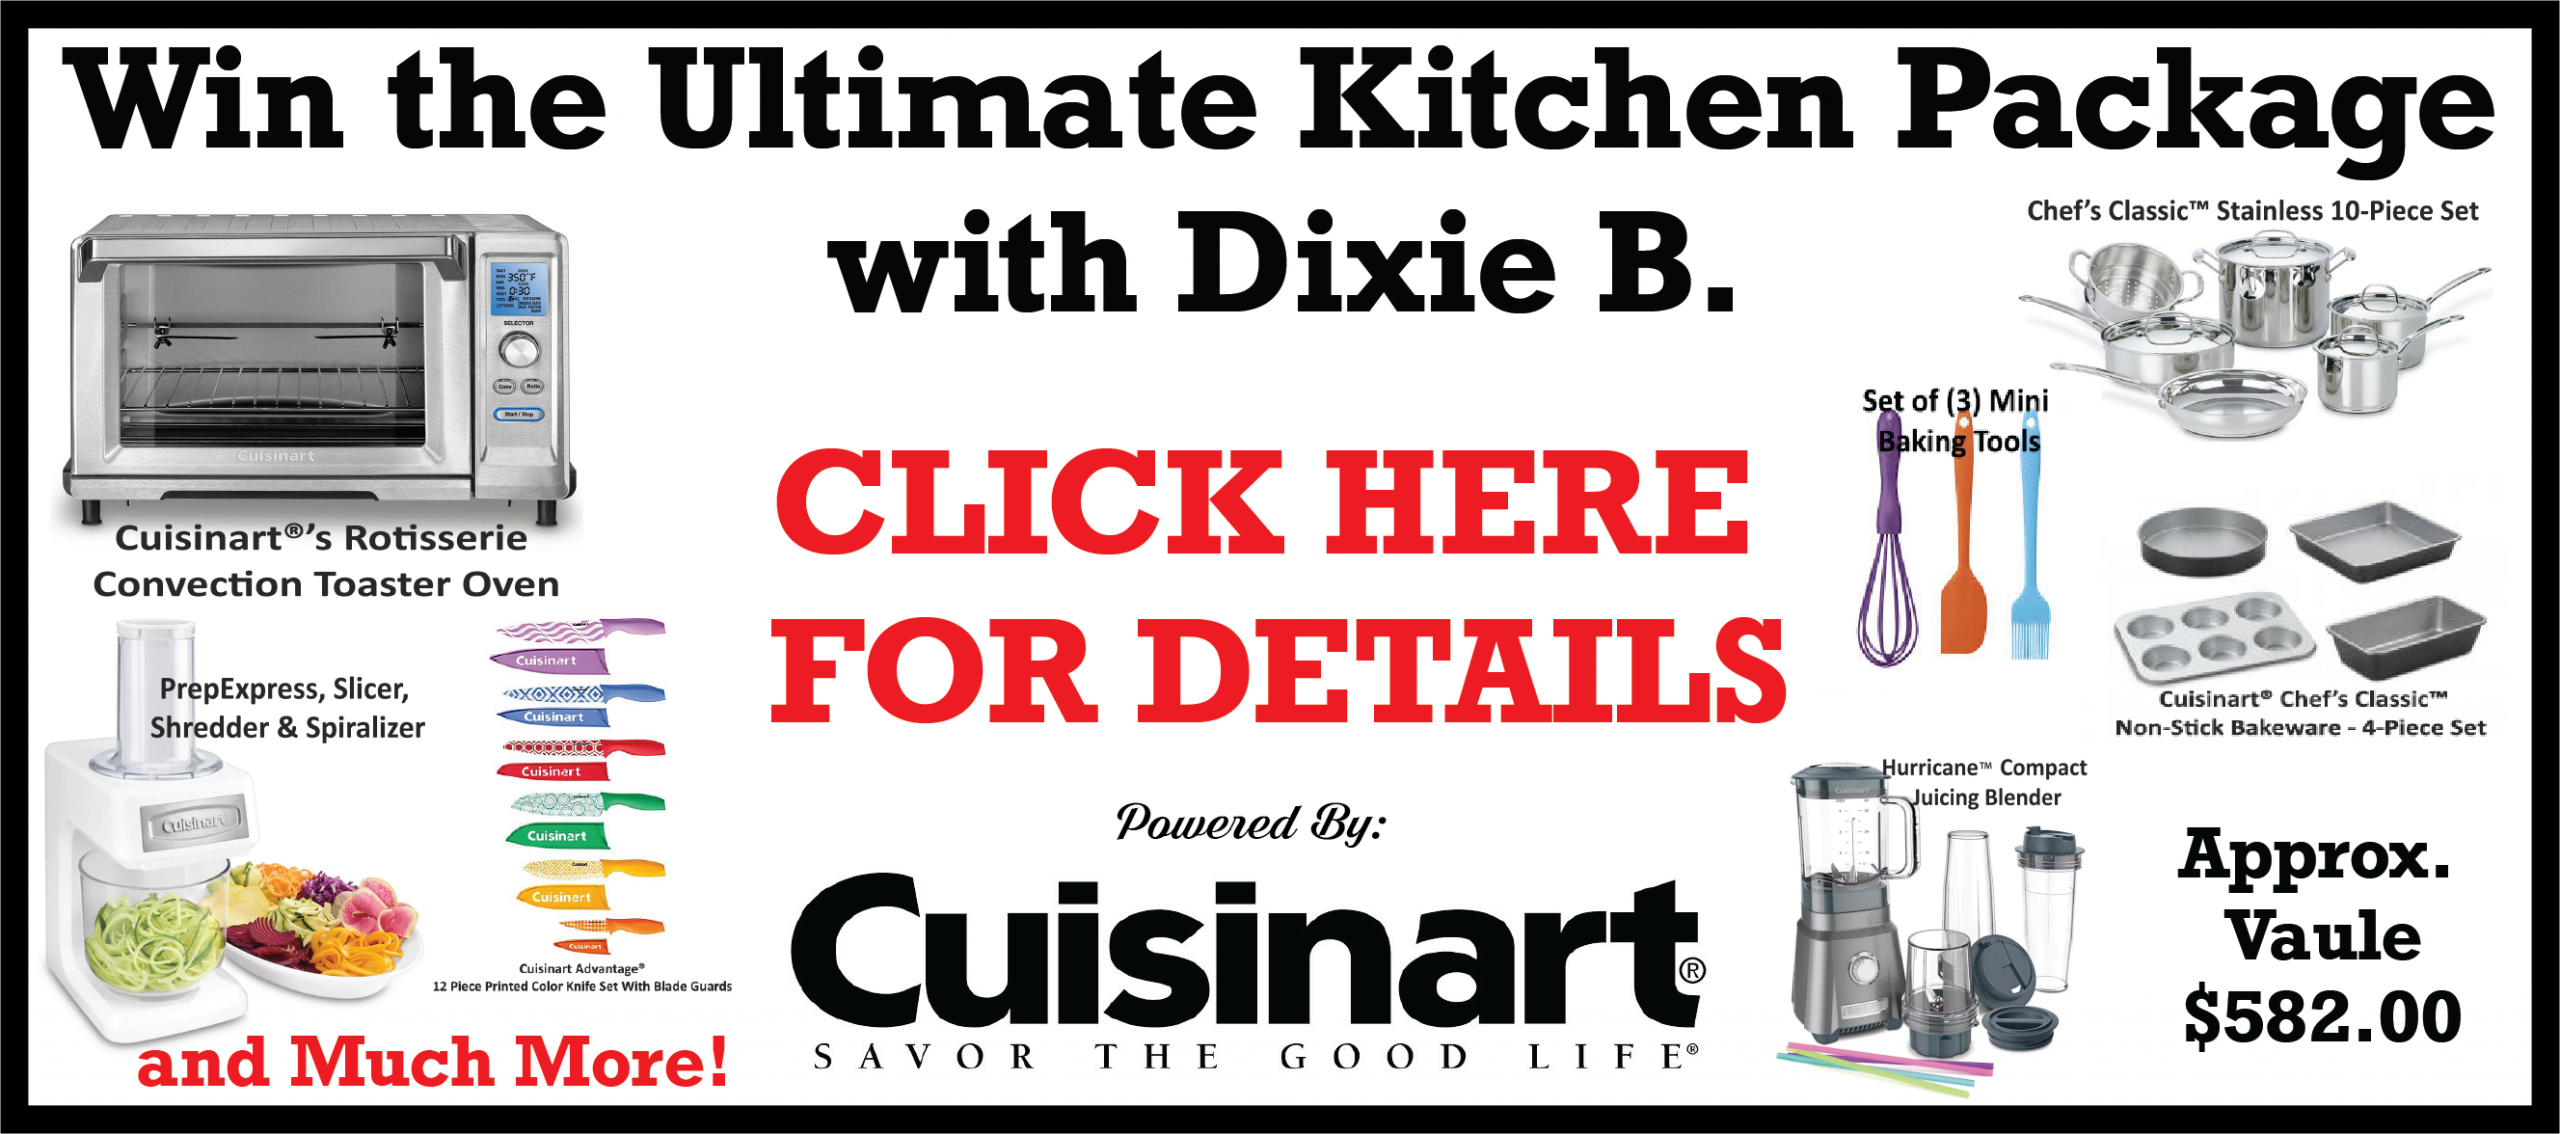 Feature: http://www.1100knzz.com/win-the-ultimate-kitchen-package-with-dixie-b-powered-by-cuisinart/